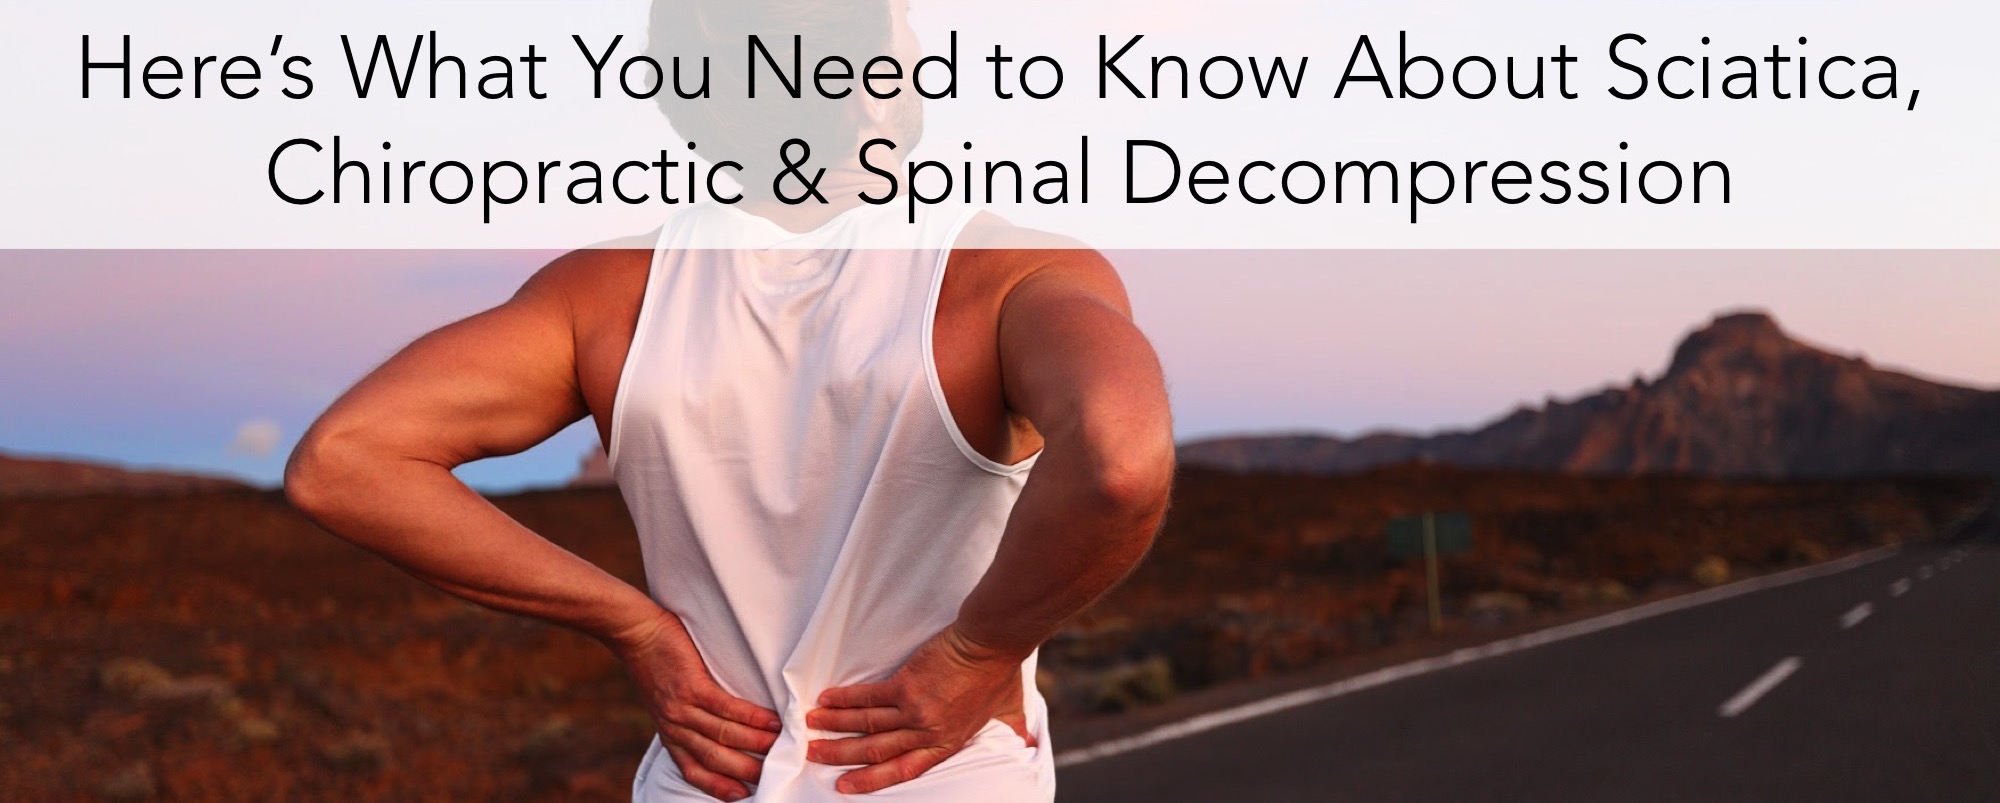 Here's What you Need to Know about Sciatica, Chiropractic and Spinal Decompression